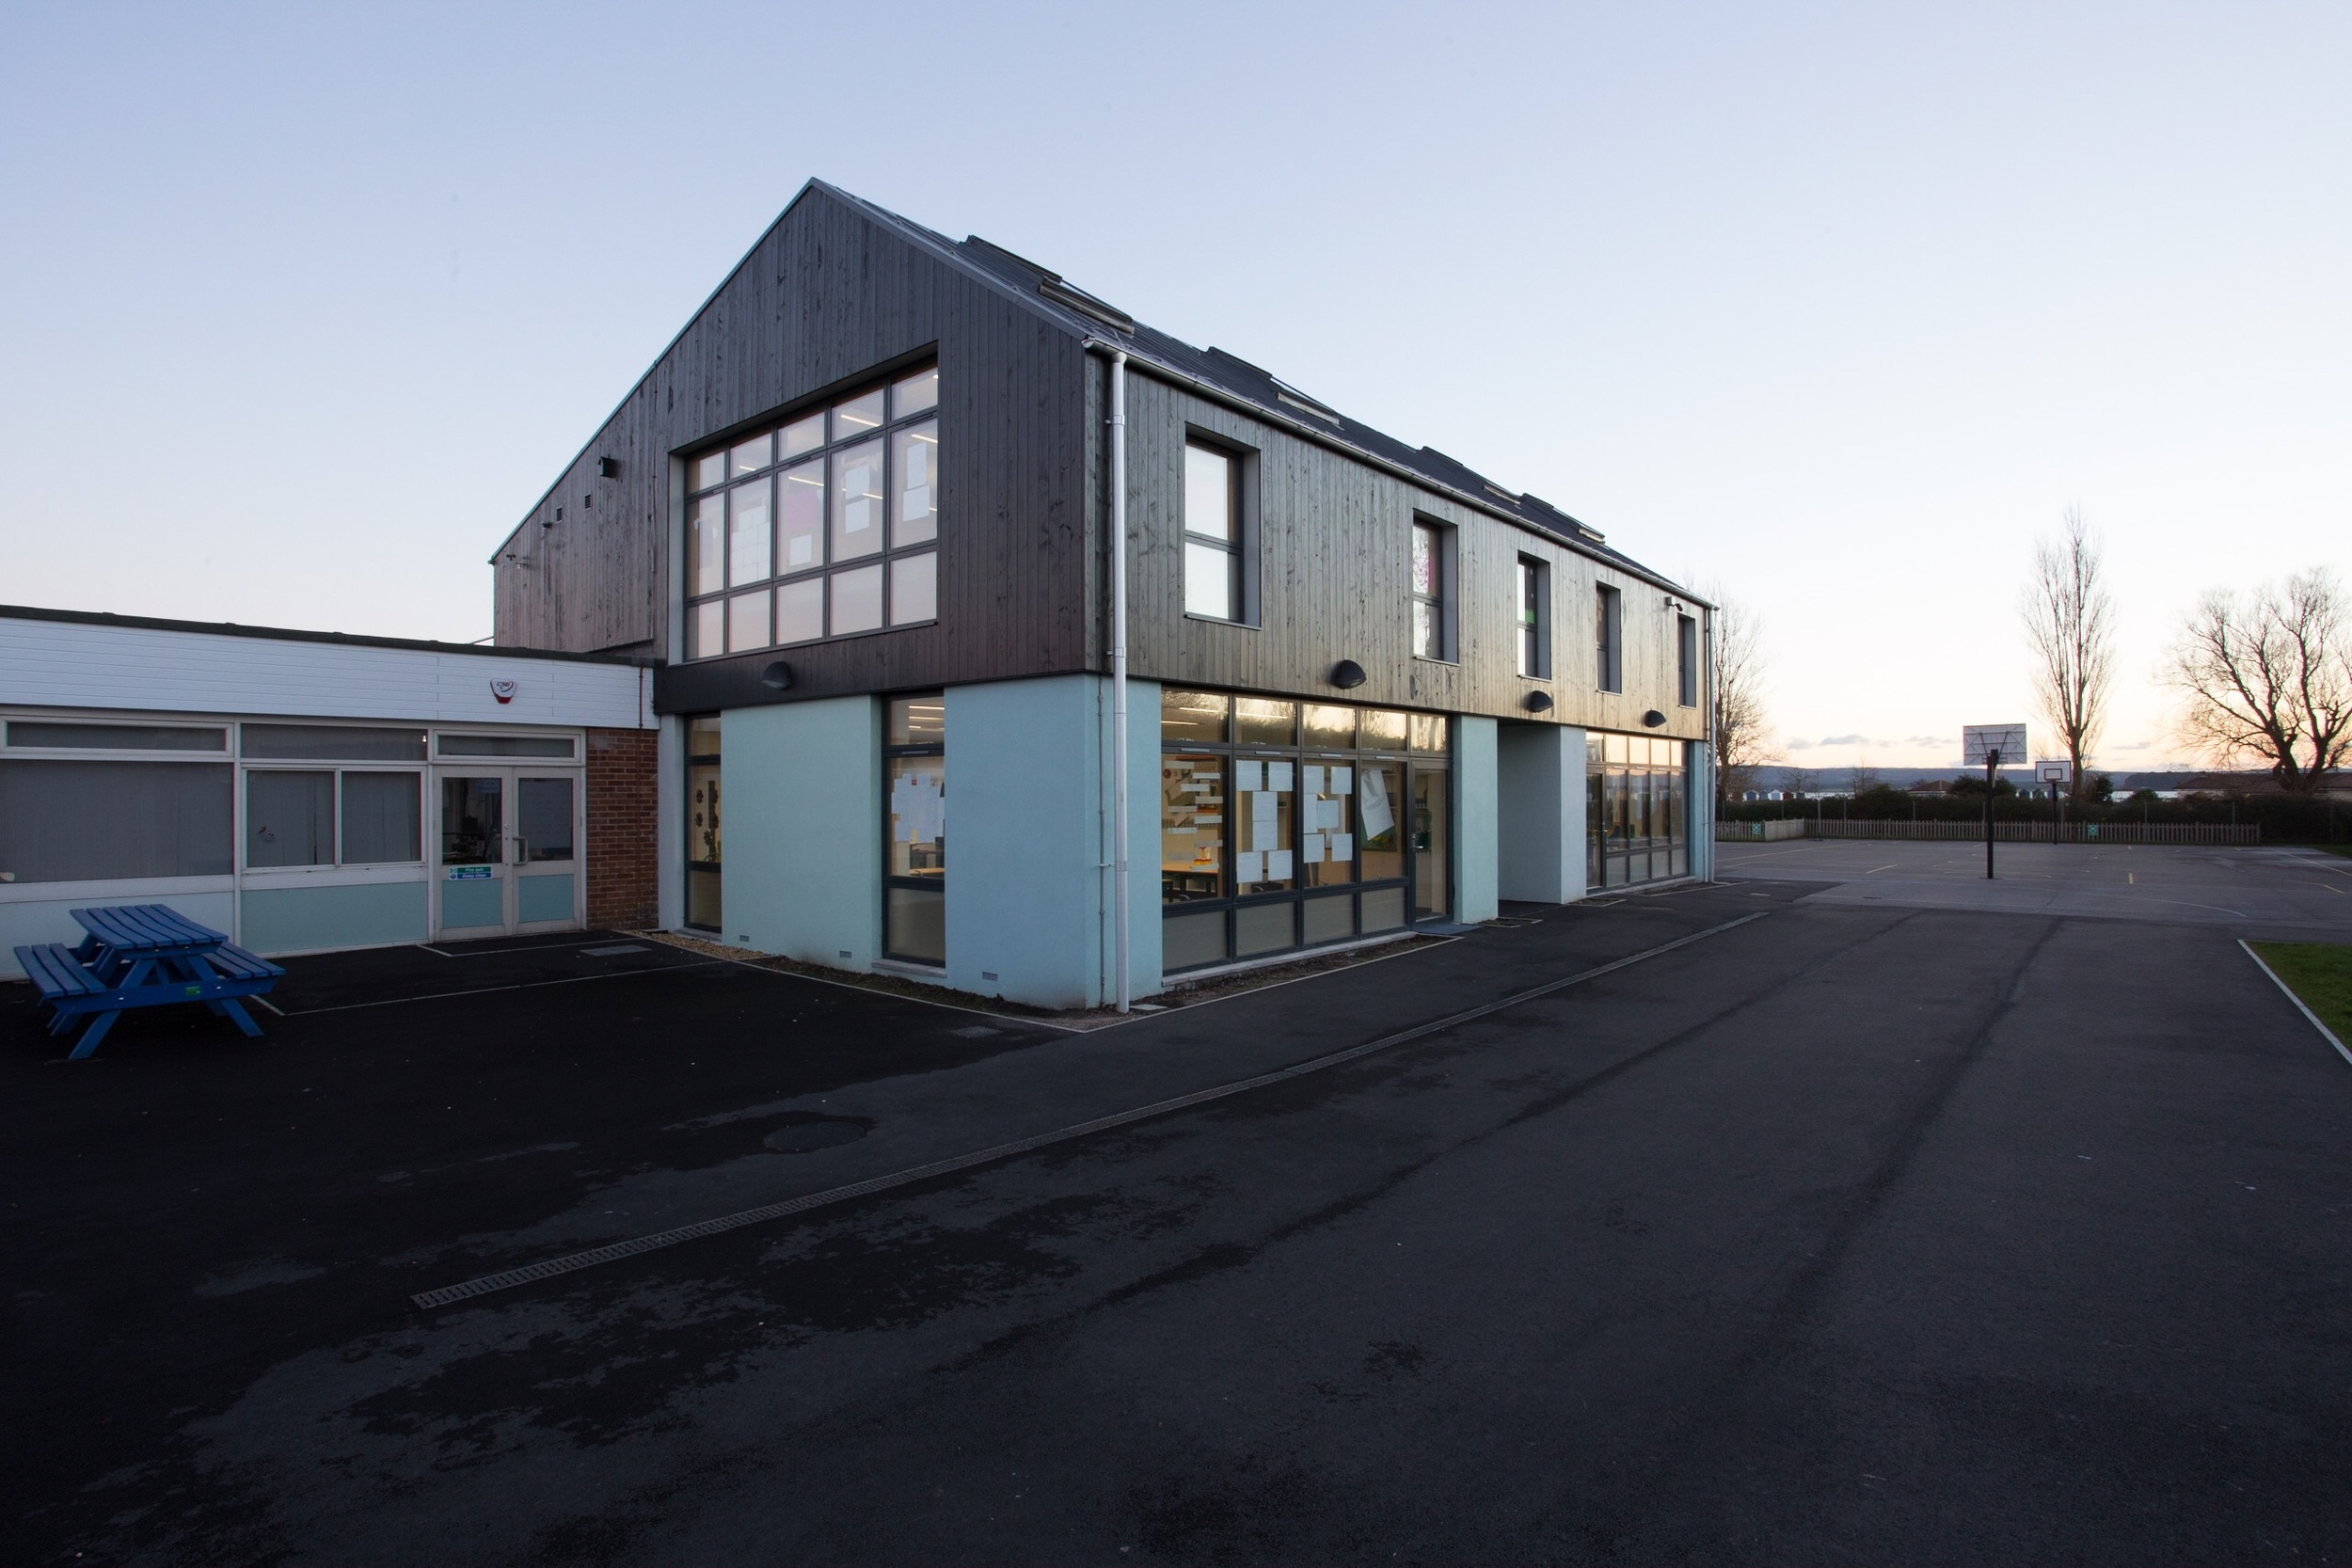 Hamworthy Park Junior School extension for the client, the Borough of Poole